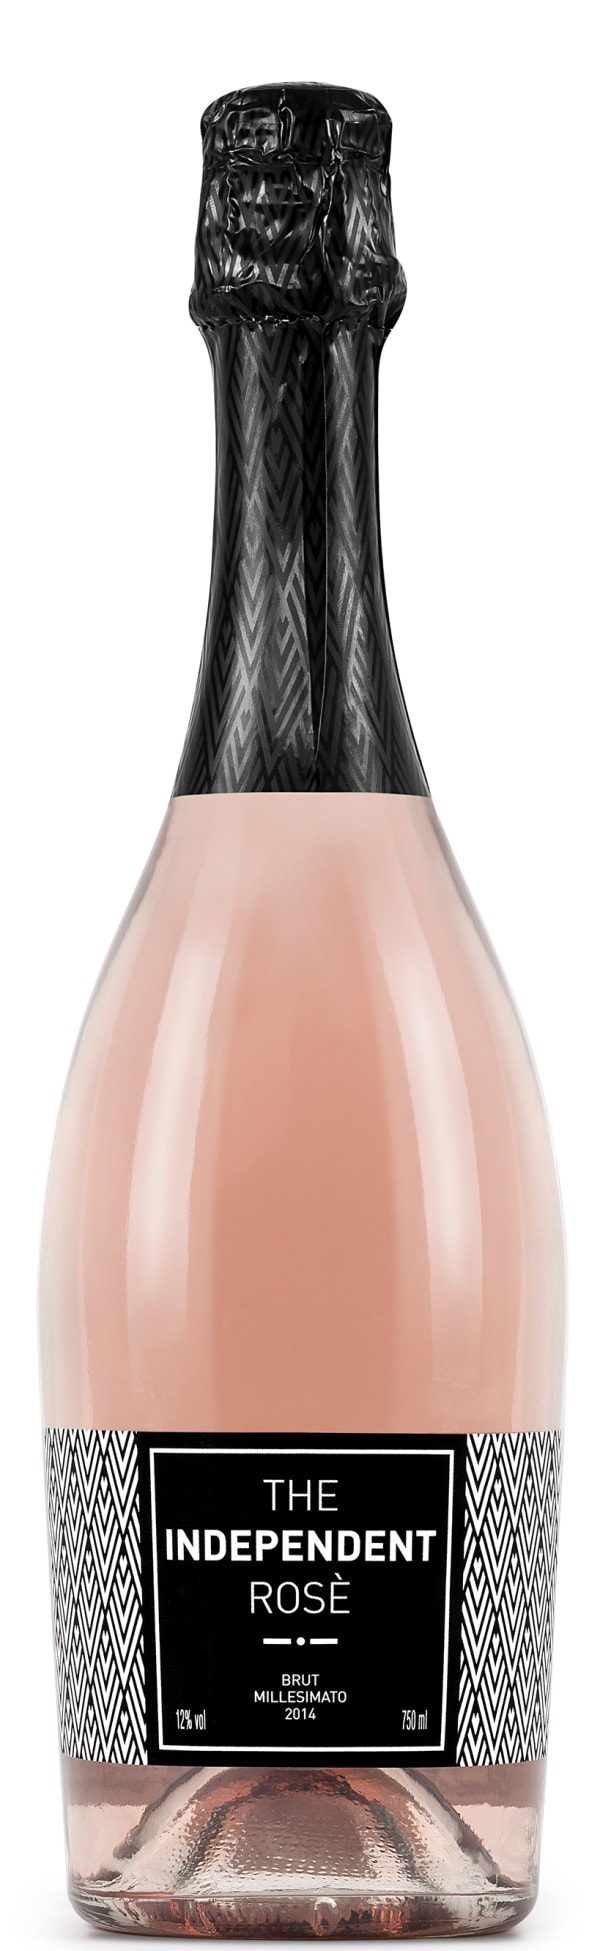 The Independent Rosé Brut 2014